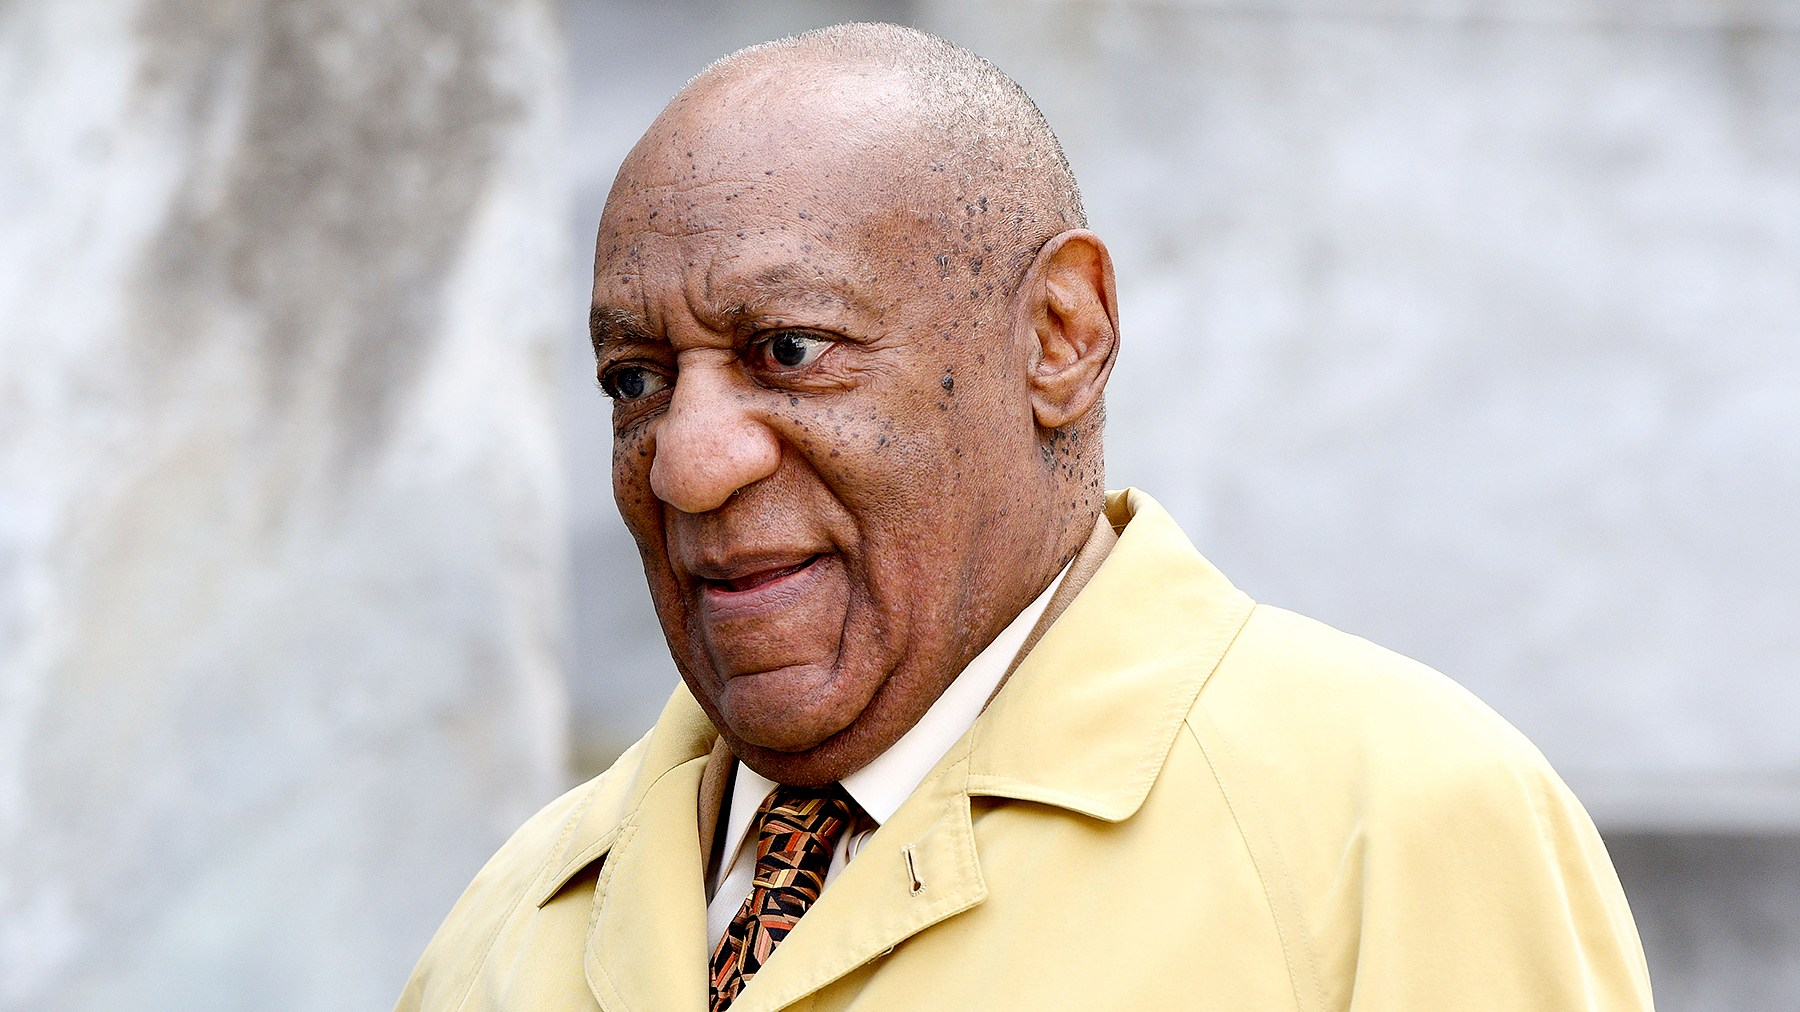 Bill Cosby spotted at the Montgomery County court house in Norristown, PA attending a new hearing on his sexual assault case February 27, 2017.